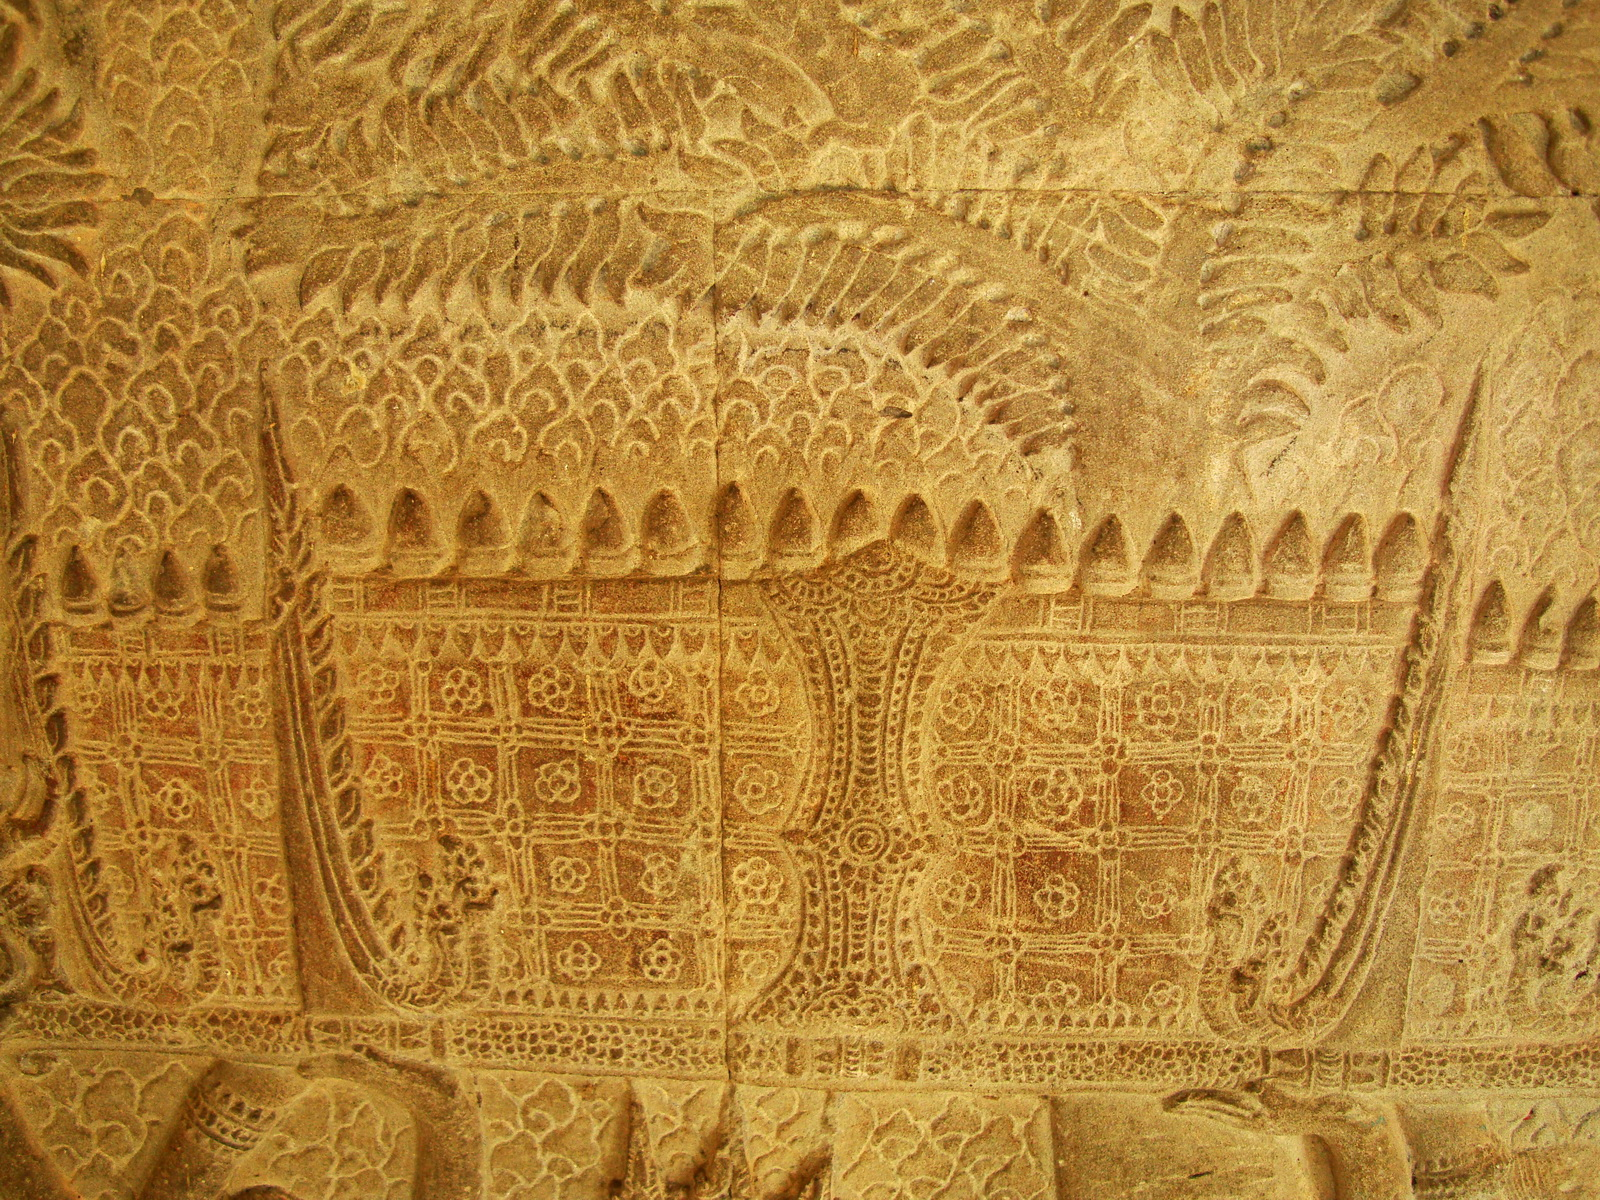 Angkor Wat Bas relief S Gallery W Wing Historic Procession 027